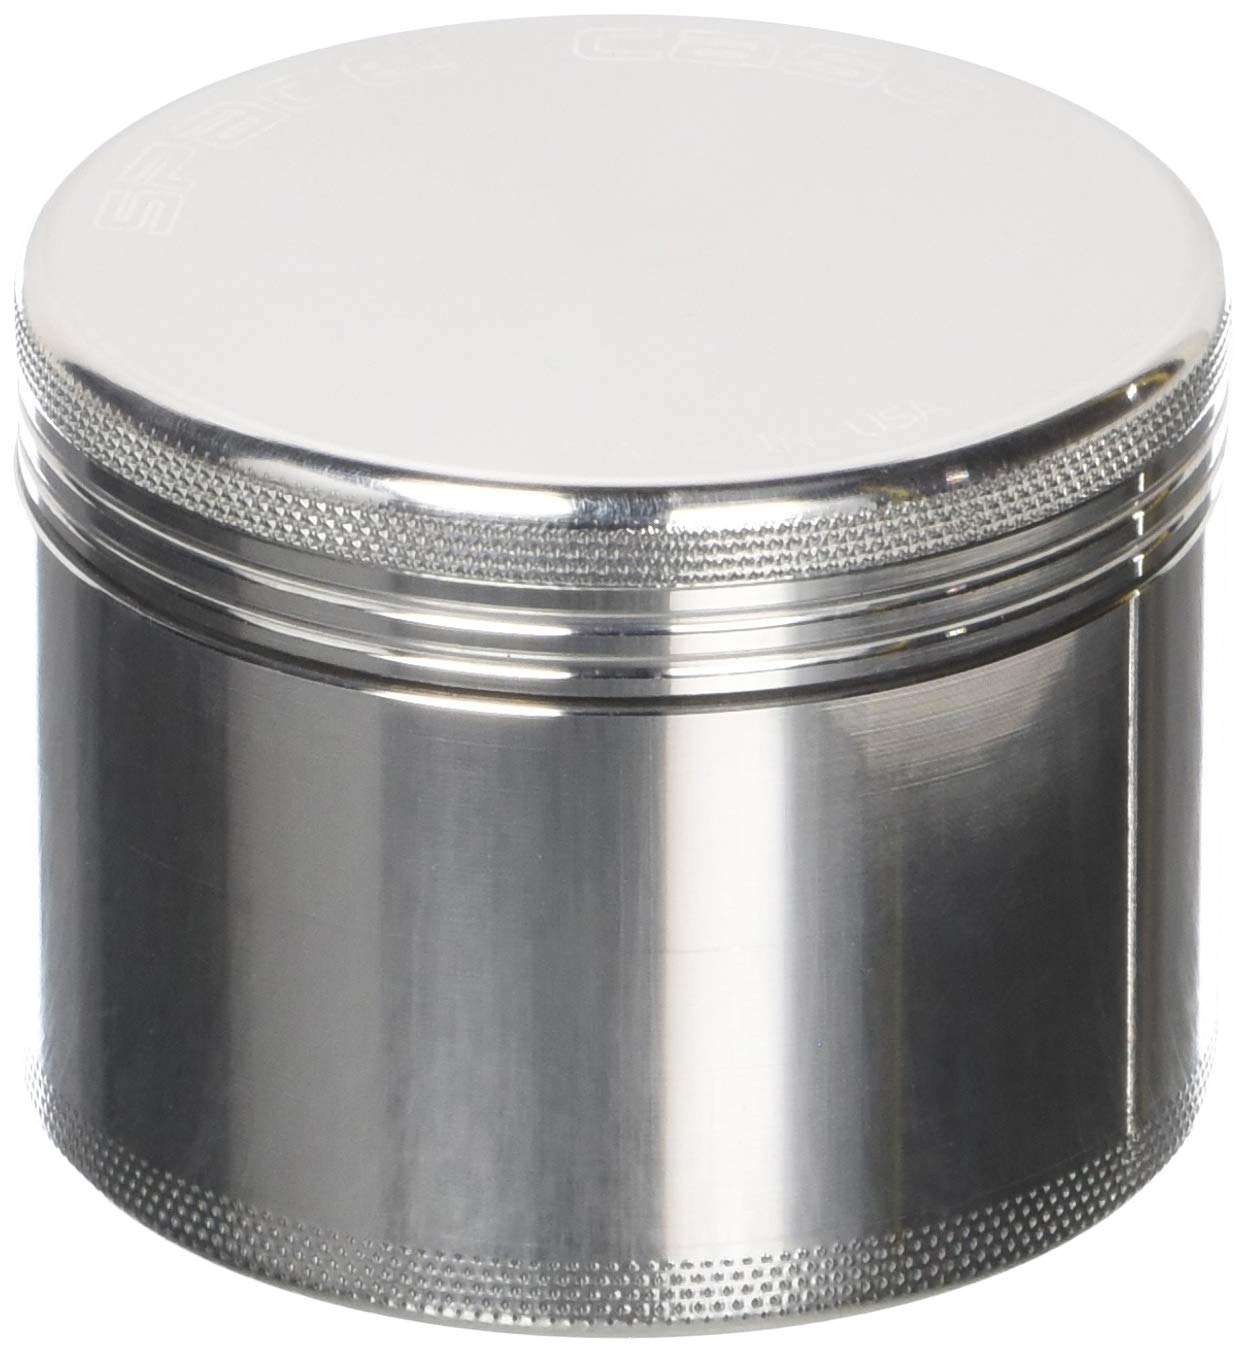 SPACE CASE Grinder Sifter Mag. 4 Pc. Medium by Space Case